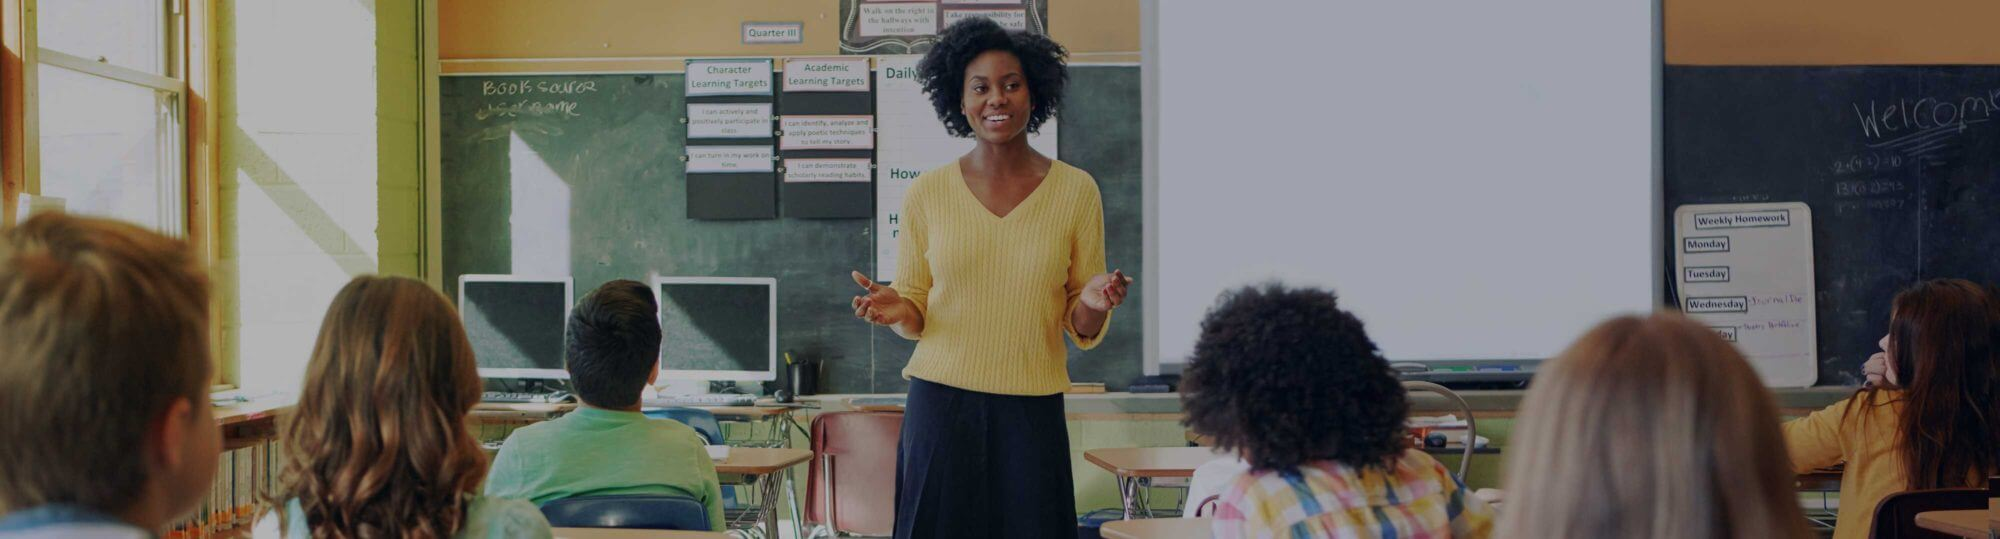 A teacher delivers a sexual health lesson to a classroom of students